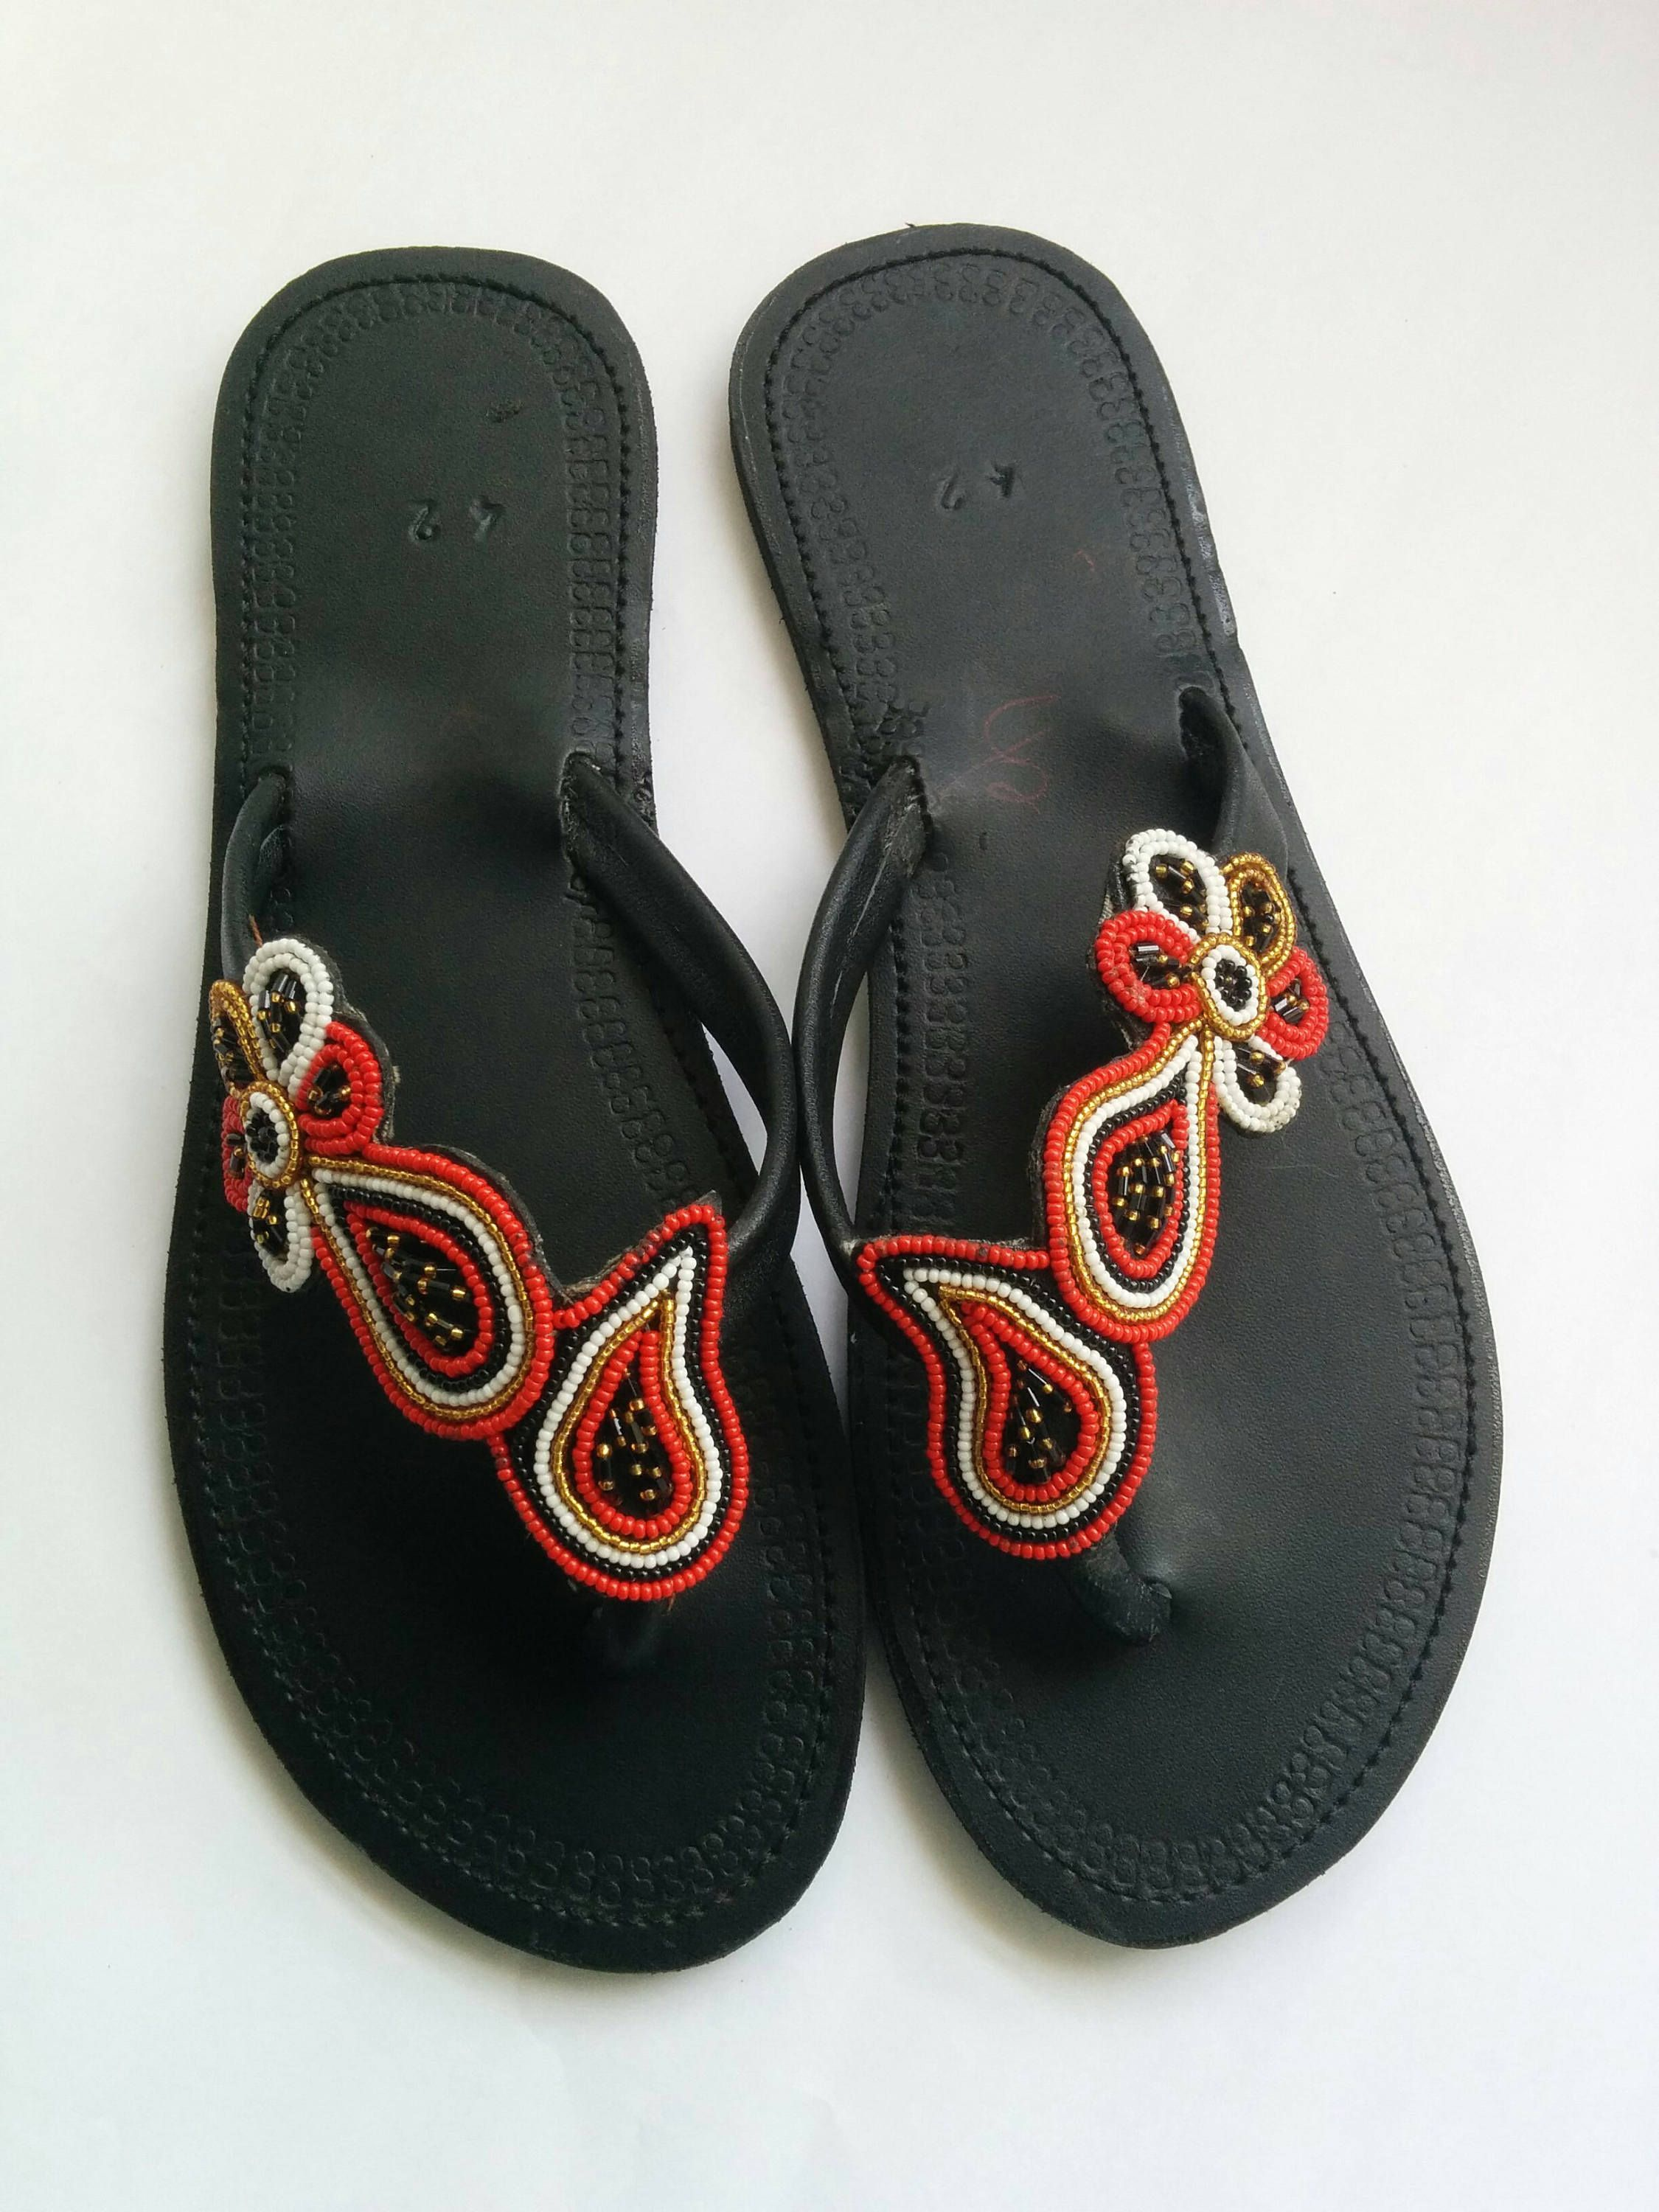 54e5631c30511 Zarifa sandals African sandals Sandals Maasai leather sandals Leather  Sandals African shoes Kenyan sandals Women sandals Women shoes by Africozz  on Etsy